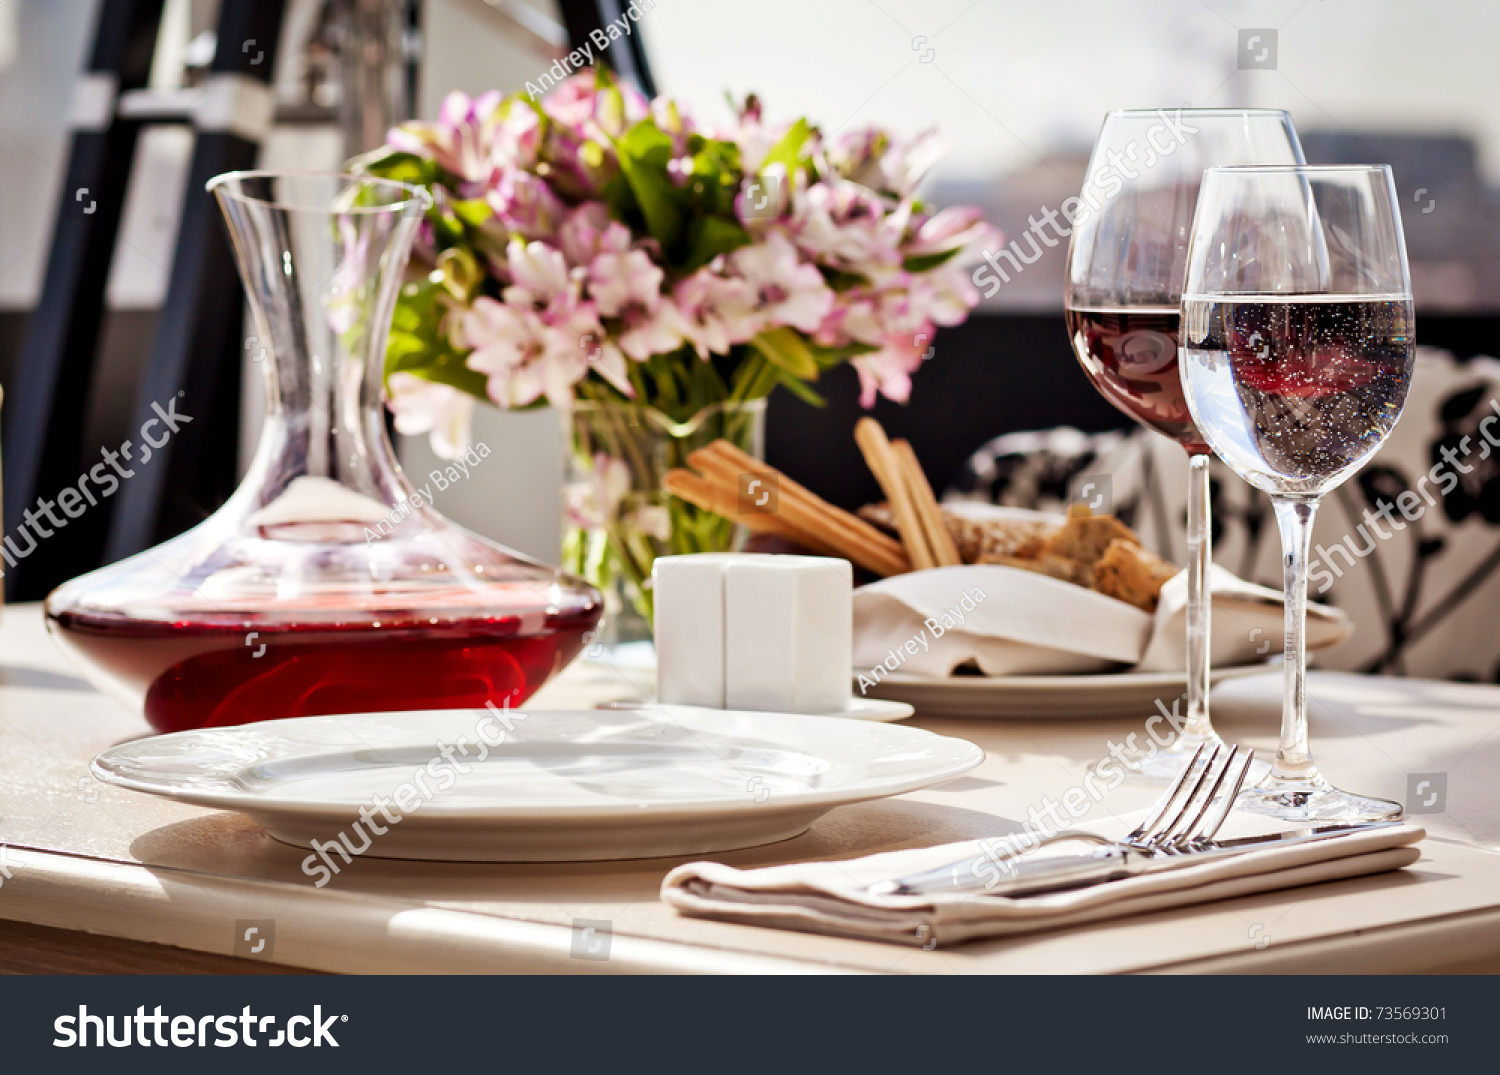 Fine Restaurant Dinner Table Place Setting Napkin  : stock photo fine restaurant dinner table place setting napkin wineglass plate bread and flowers 73569301 from www.shutterstock.com size 1500 x 1075 jpeg 523kB